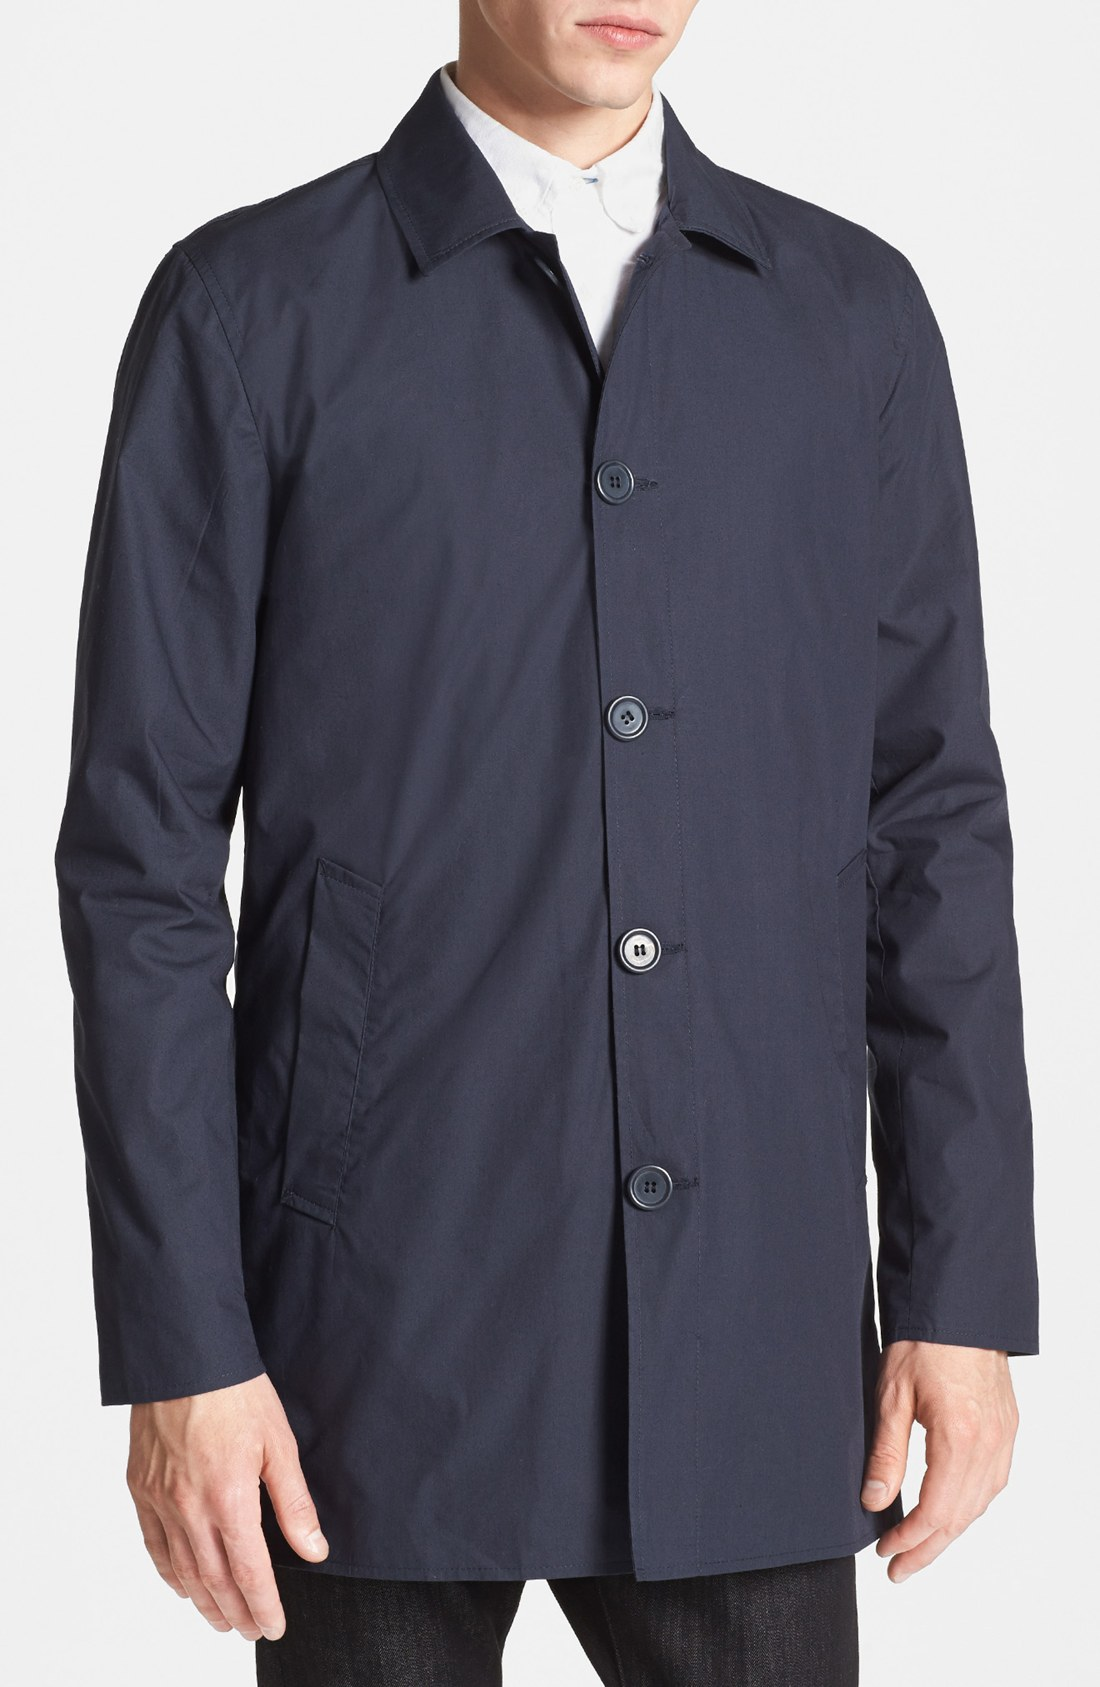 Find great deals on eBay for mackintosh jacket. Shop with confidence. Skip to main content. eBay: Shop by category. MSRP NWT Club Monaco Bonded Mac Mackintosh Raincoat Jacket L Large Navy Blue. Brand New. $ Guaranteed by Sat, Oct. Buy It Now +$ shipping. Only 1 left!